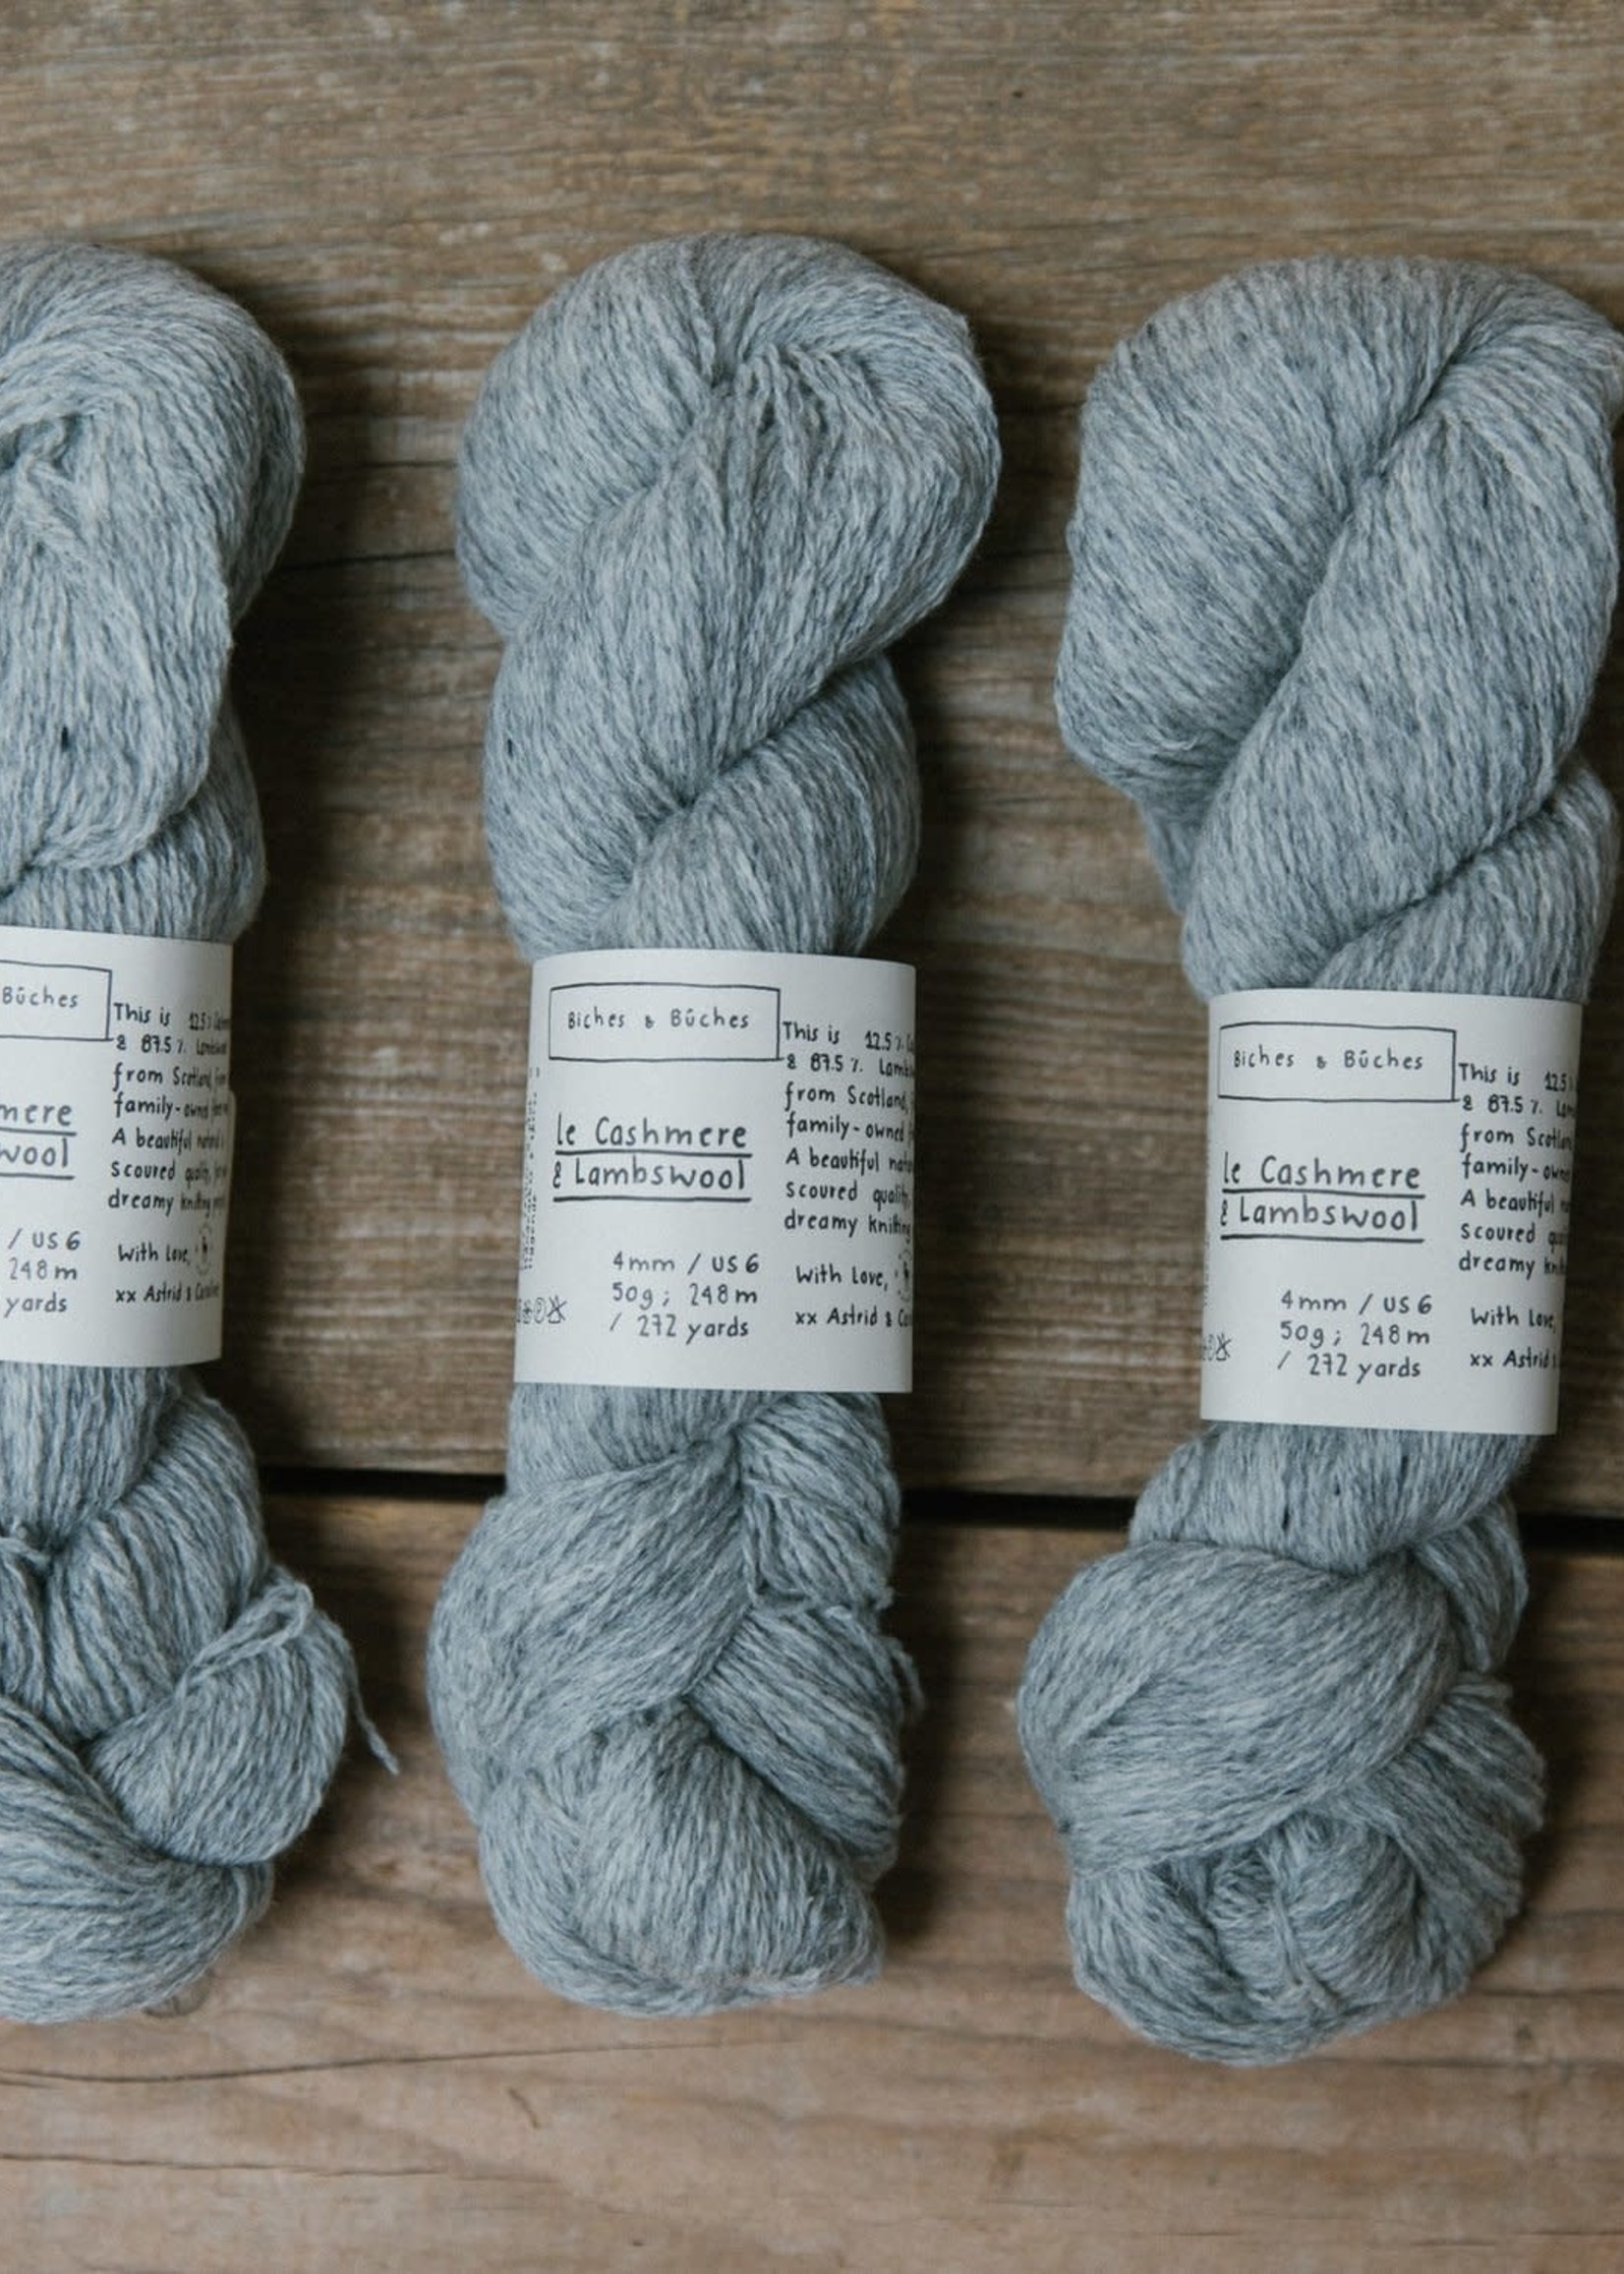 Biches & Bûches Biches & Buches Le Cashmere & Lambswool Light Grey